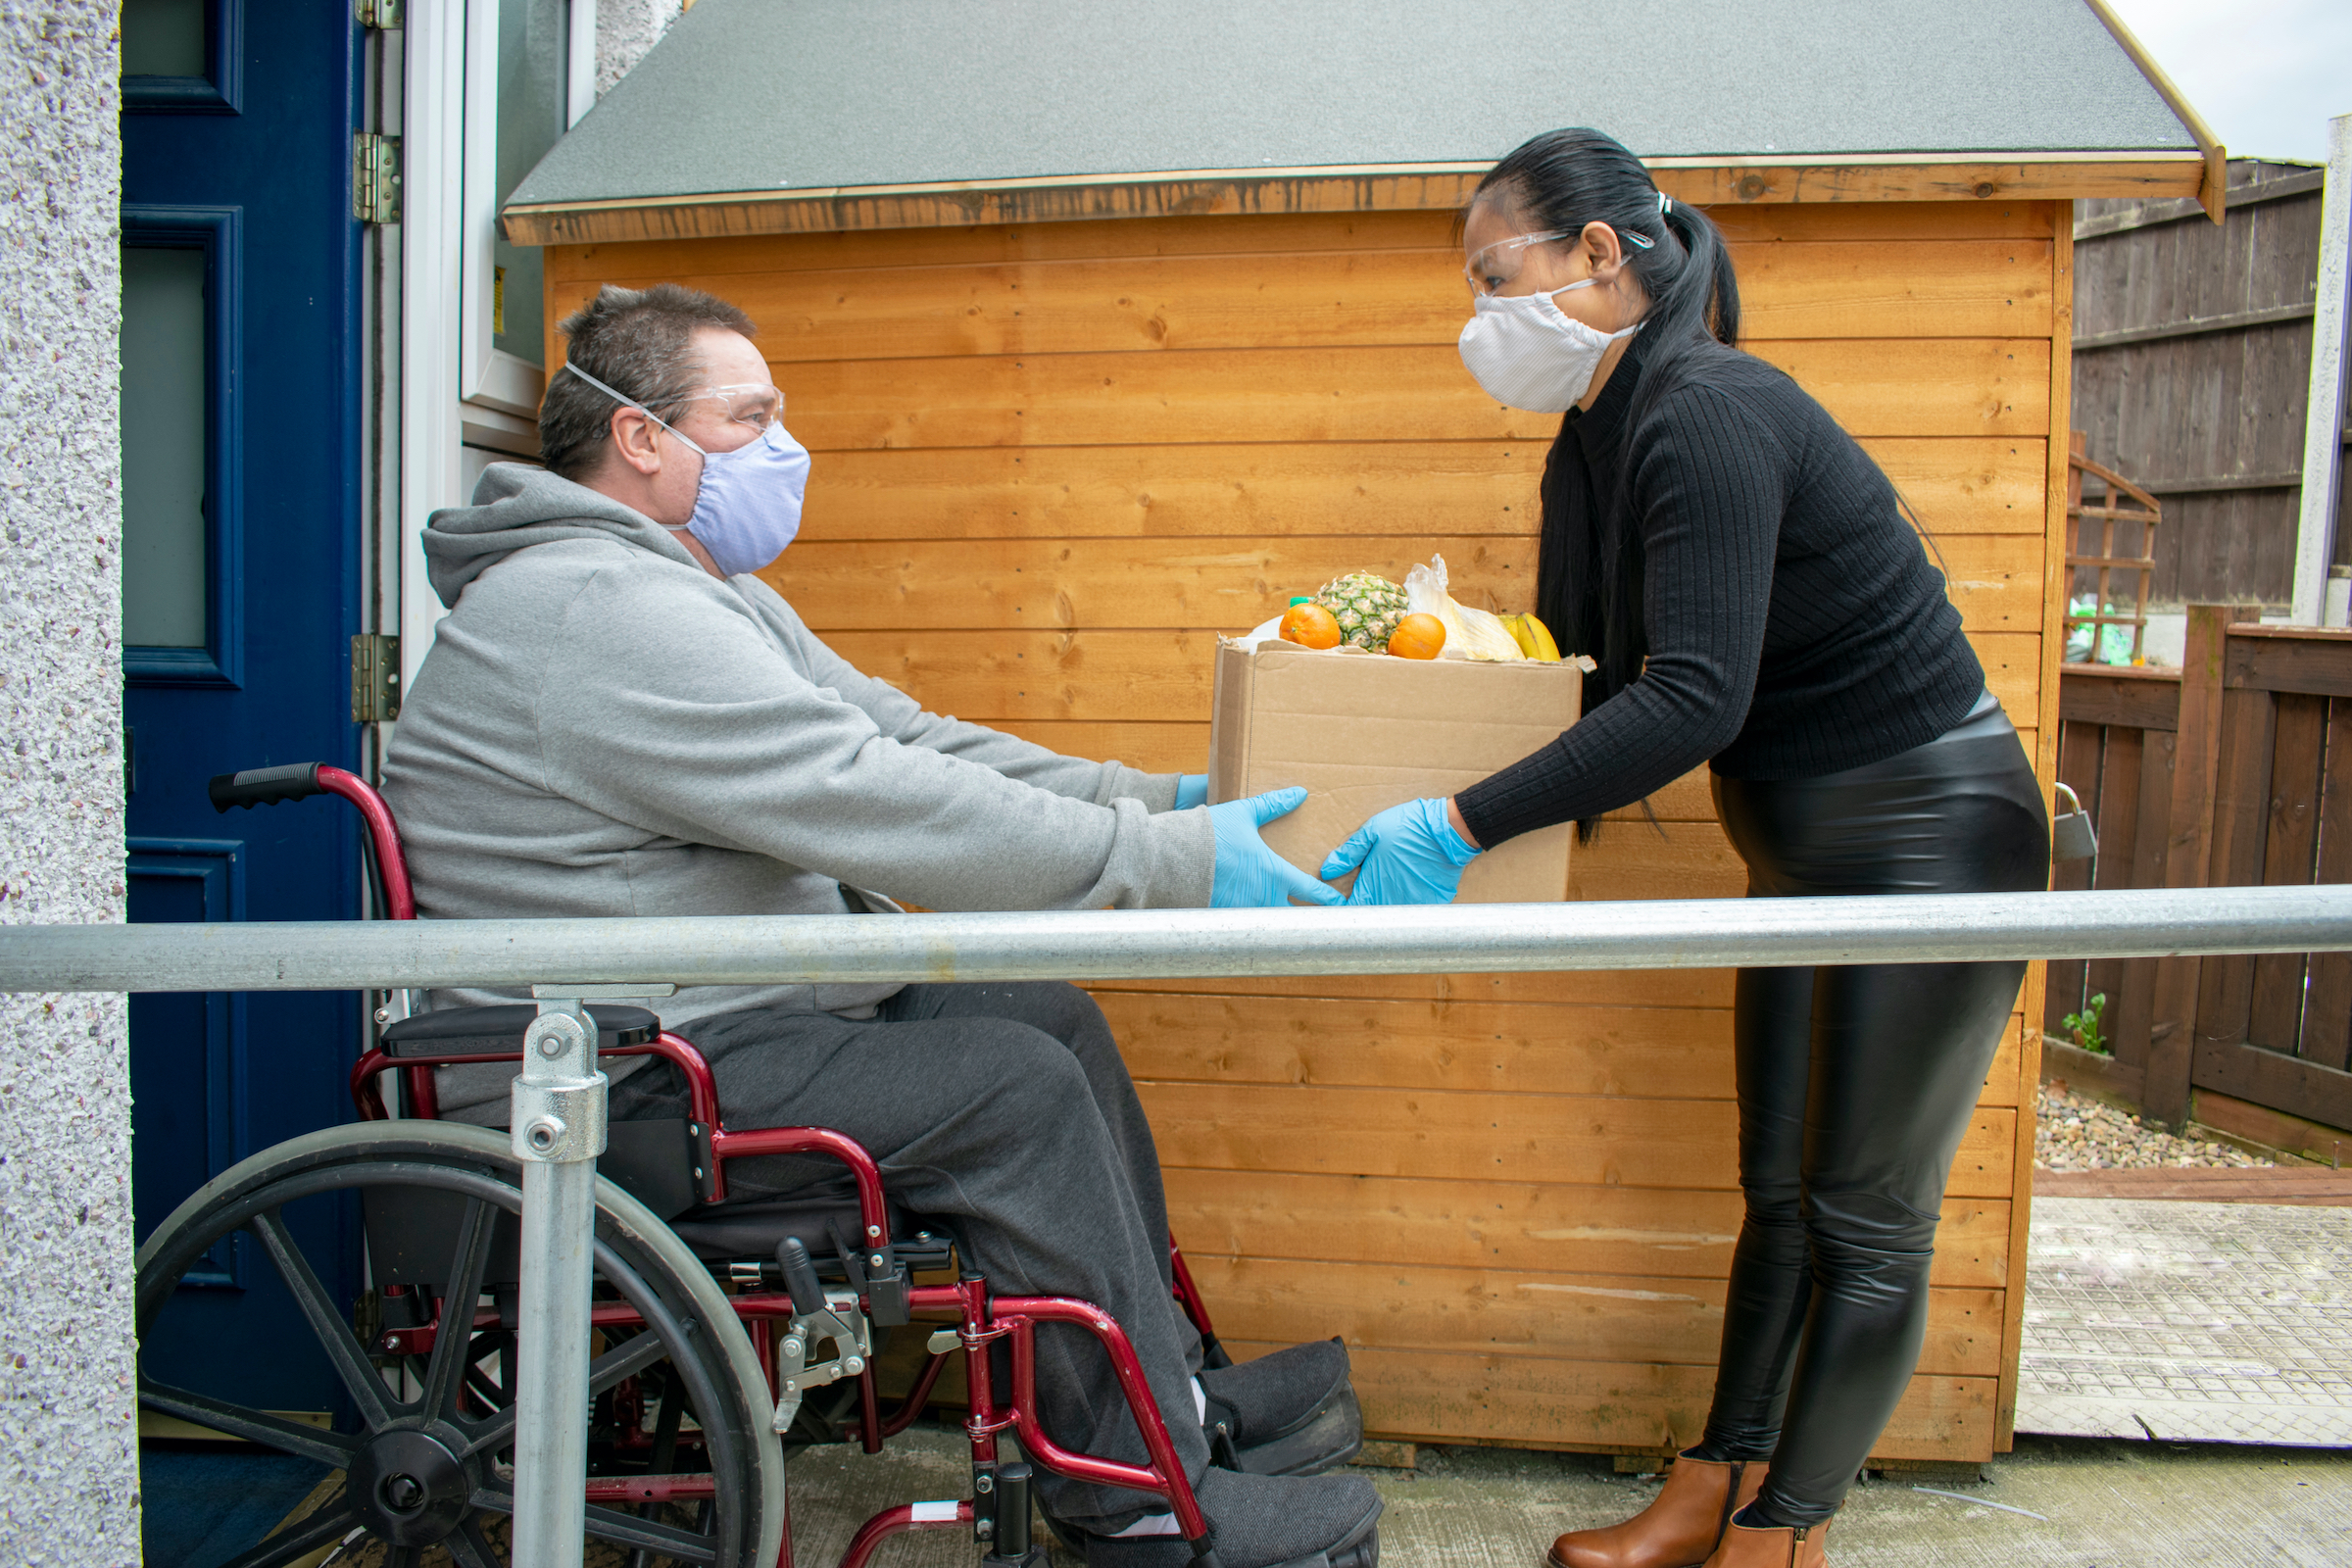 white male wearing a mask sits in a wheelchair while a woman hands him a box of groceries.